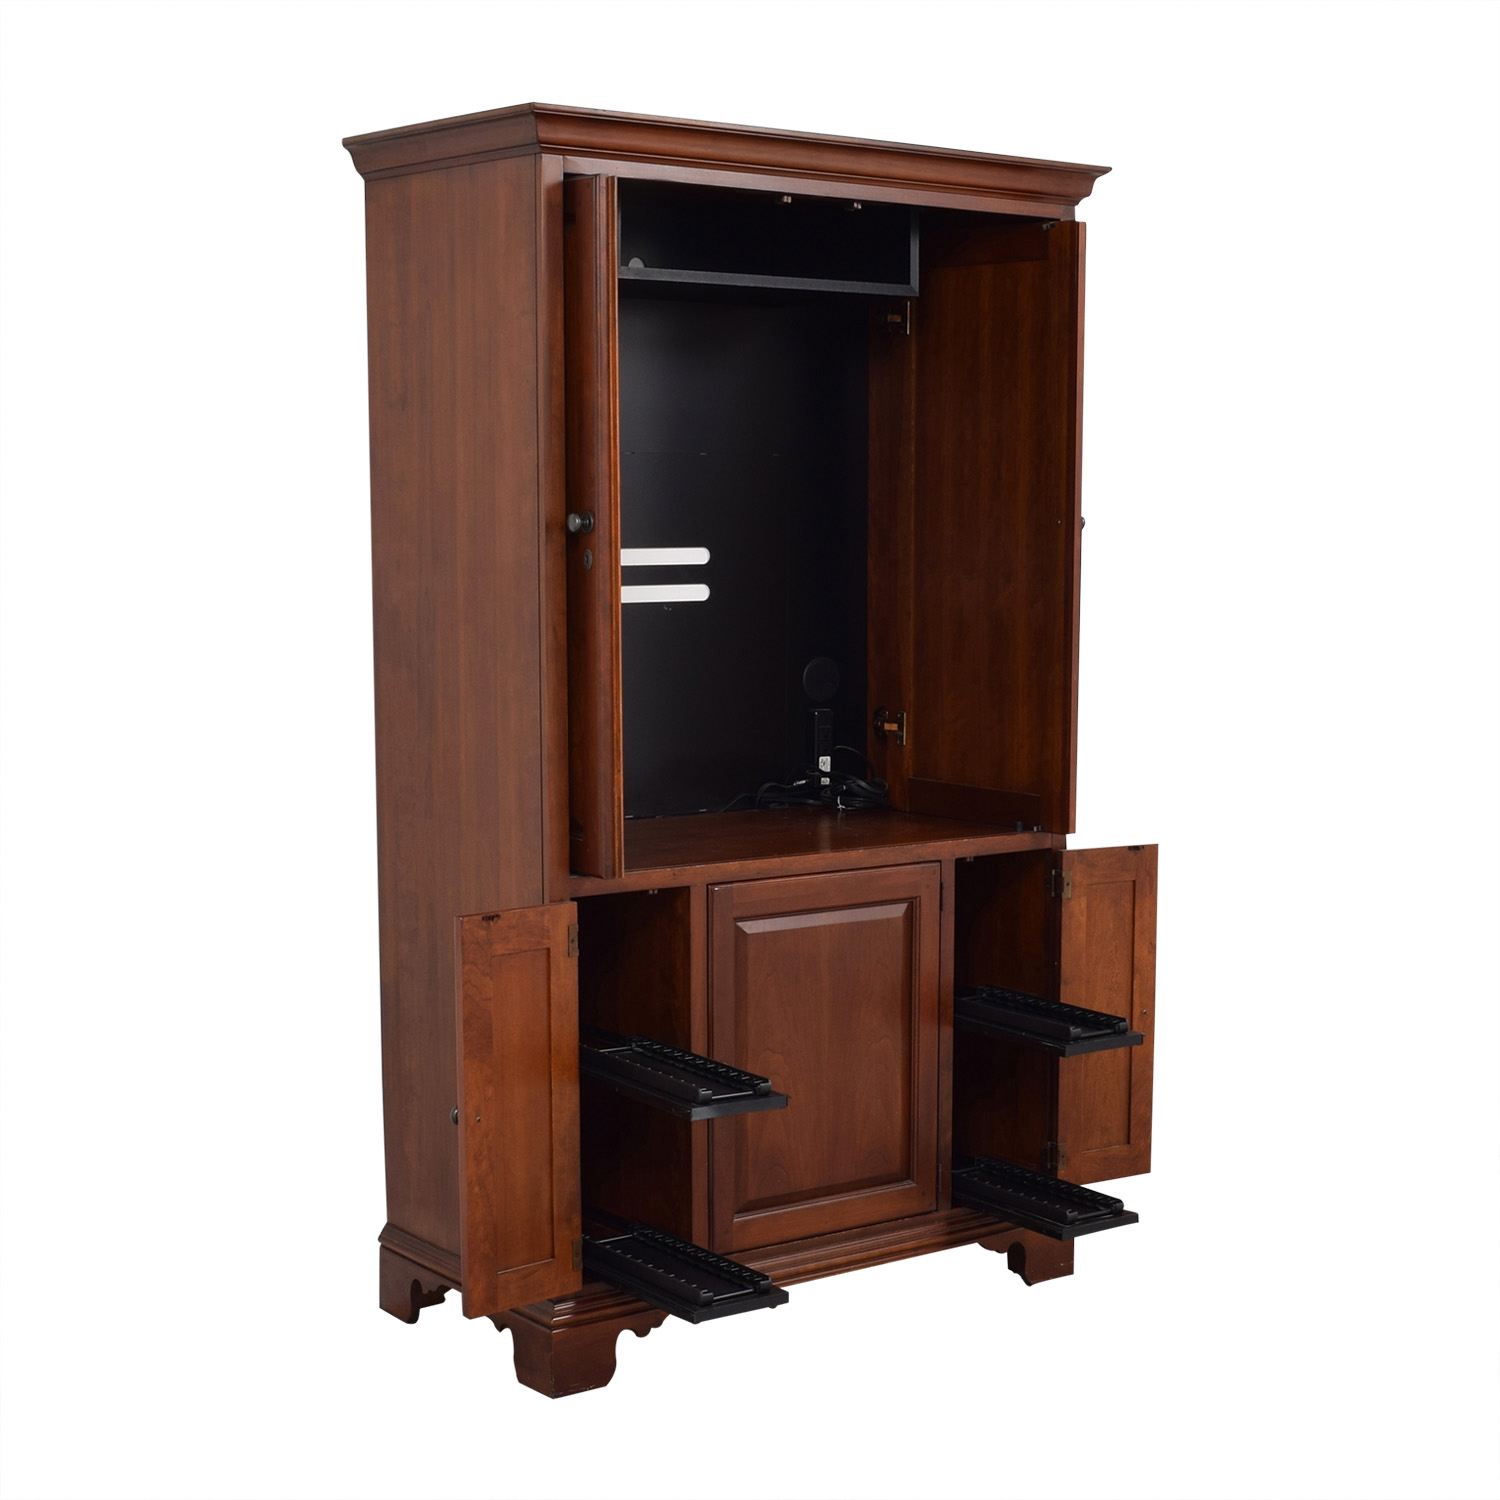 shop Lexington Furniture Lexington Furniture Armoire online